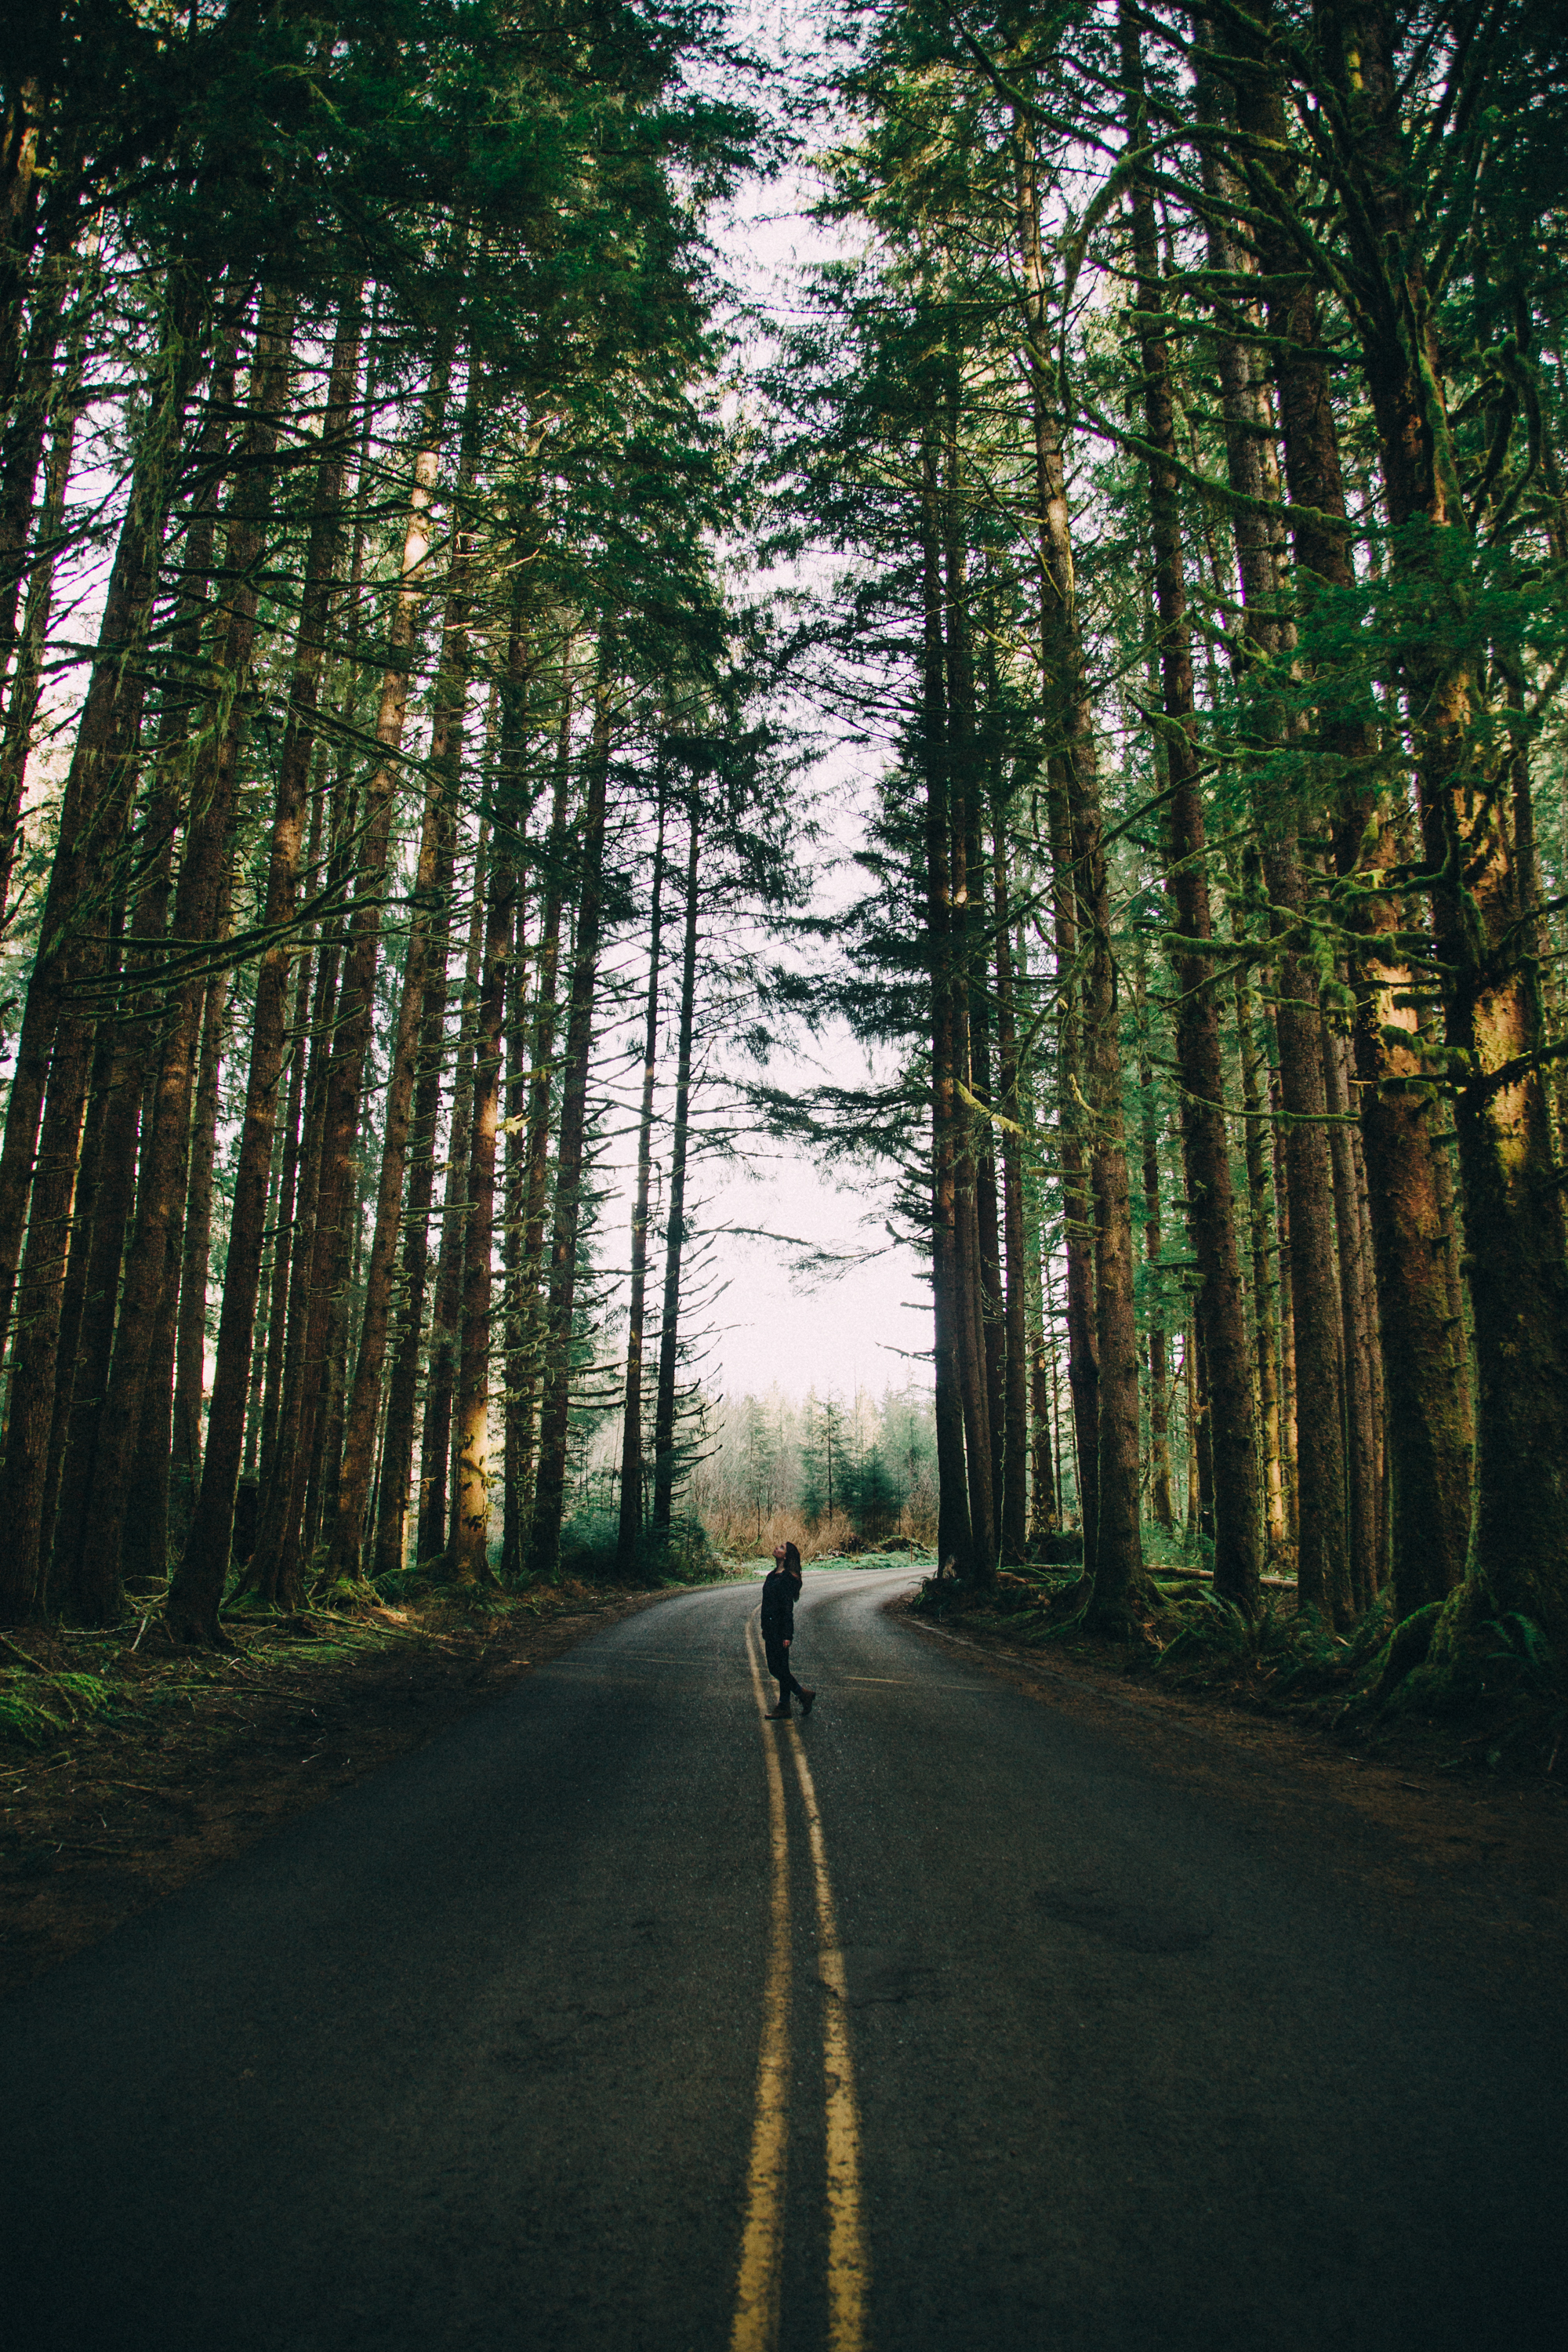 road-model-washington-hoh-rainforest-river-trees-forest-lifestyle-travel-adventure-commercial-fashio